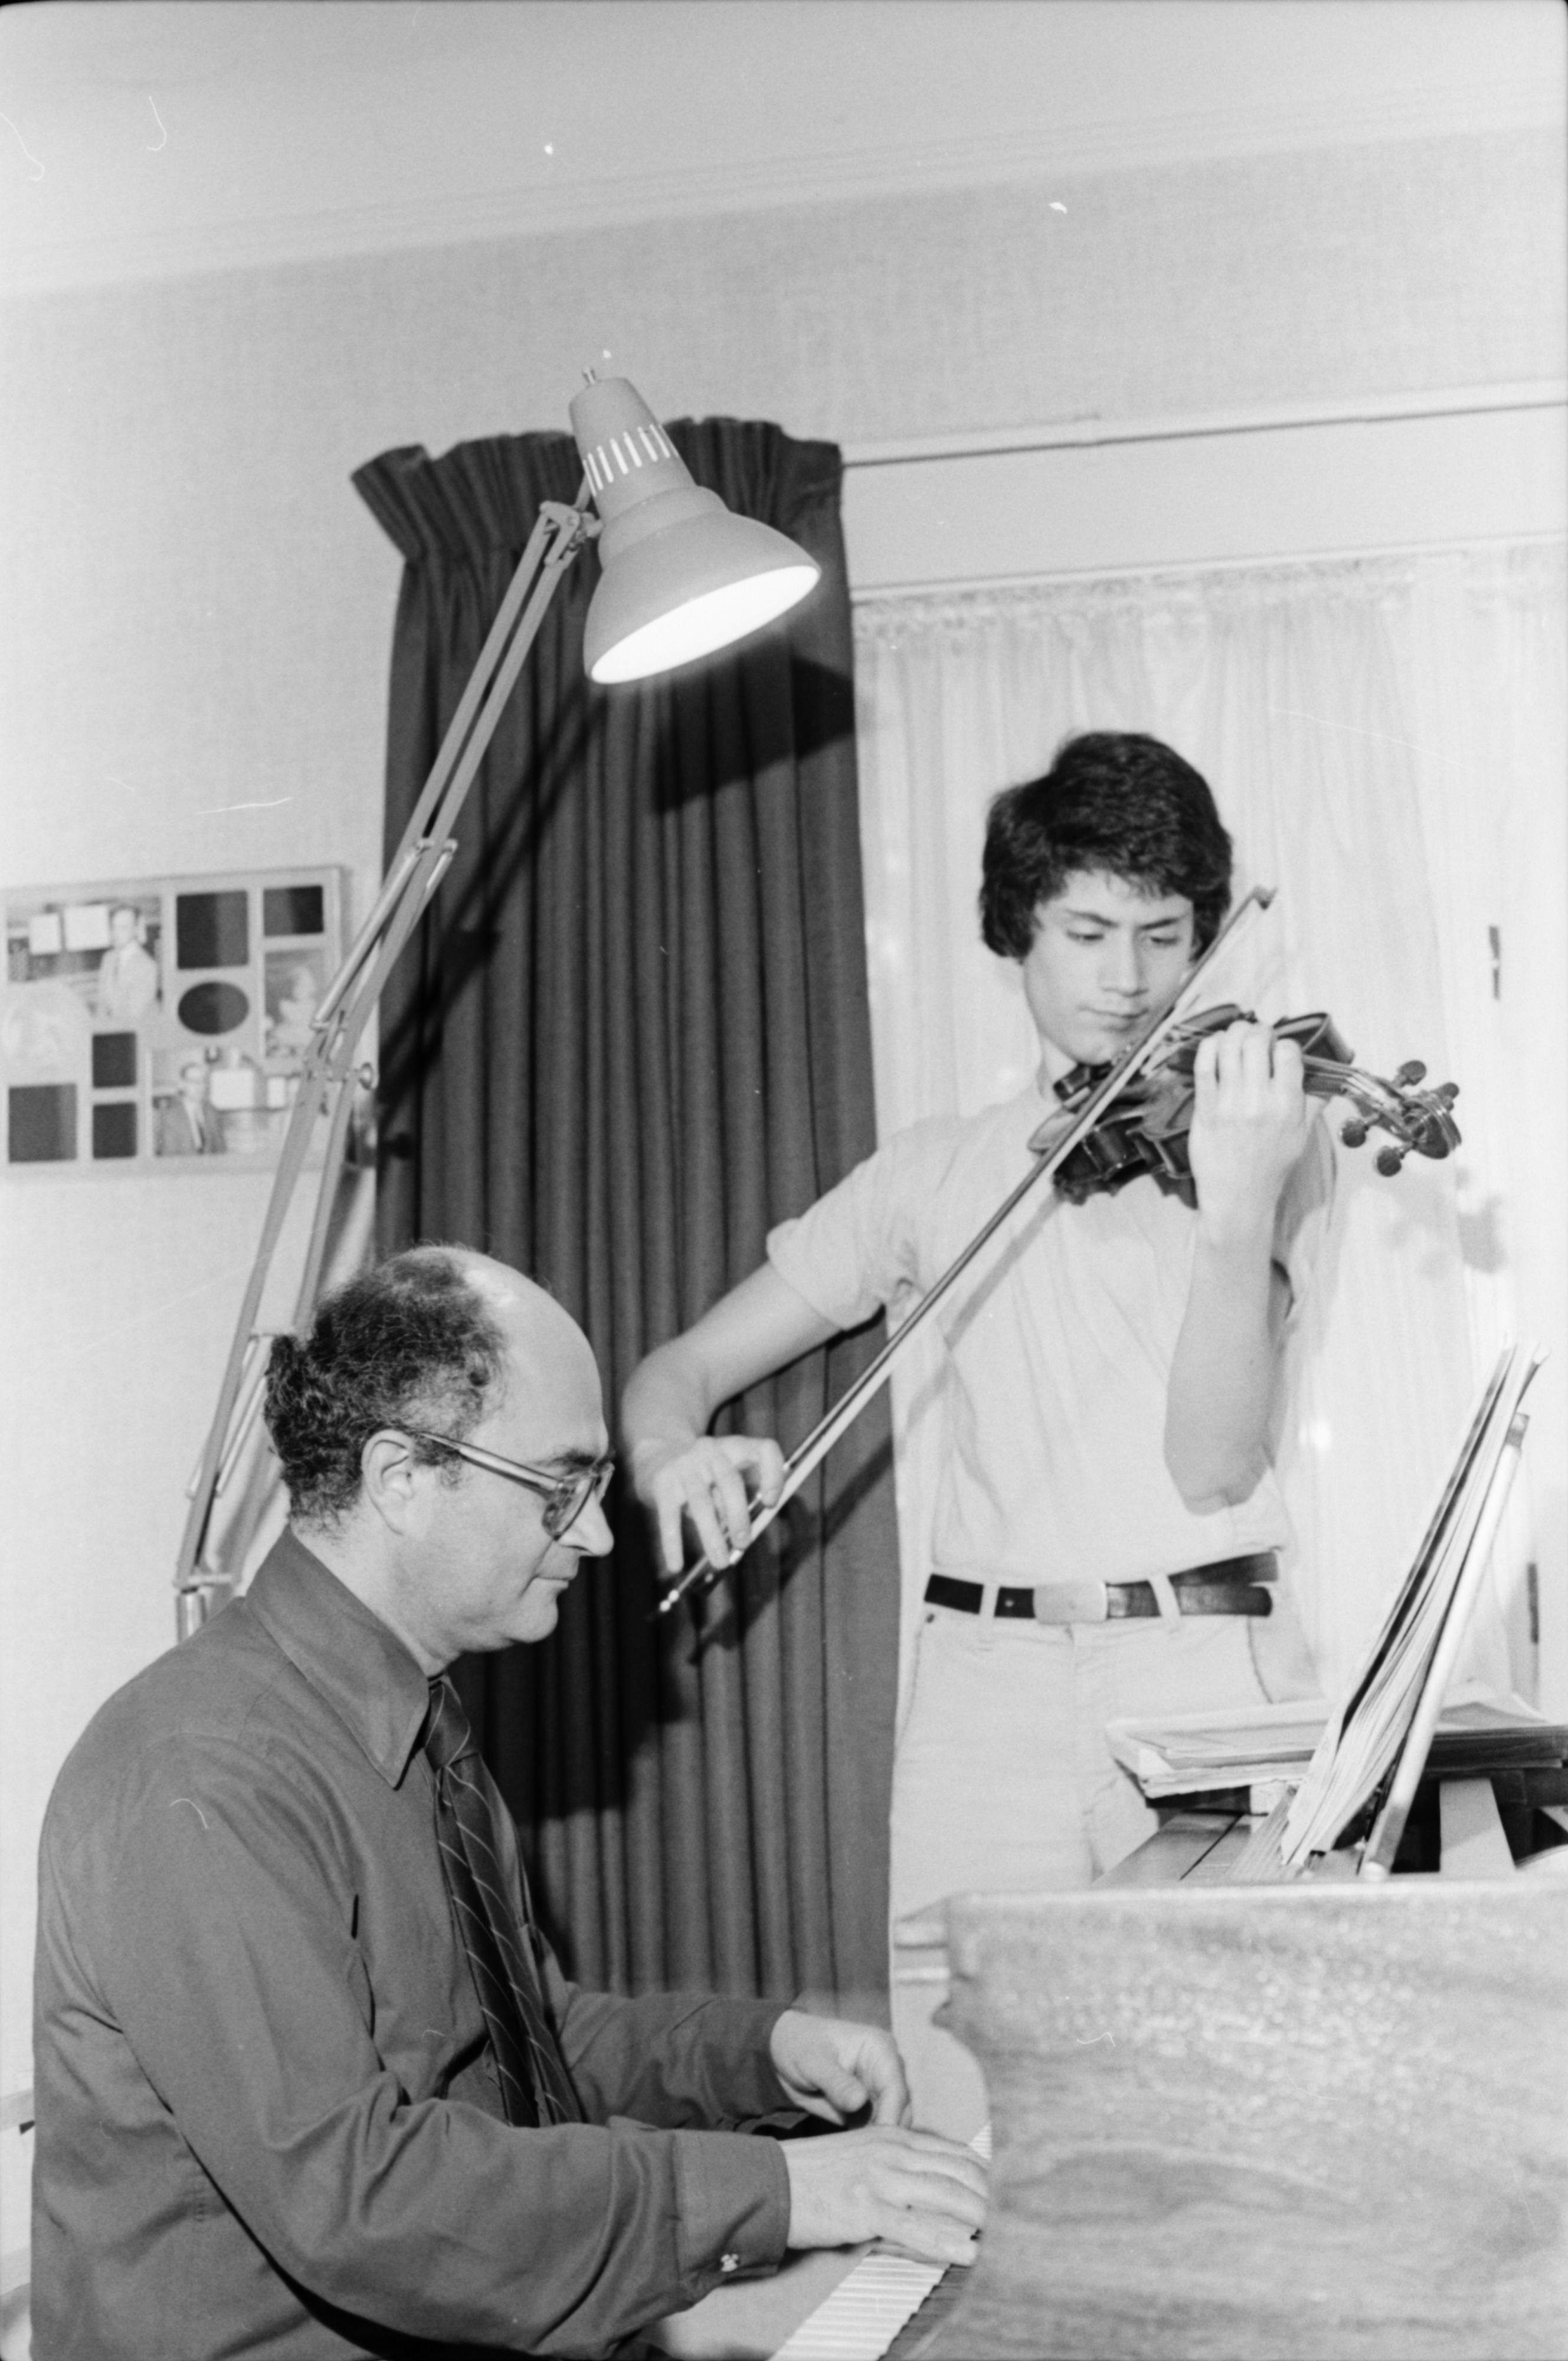 Community High Student Nuvi Mehta Takes a Violin Lesson From His Father, July 1980 image